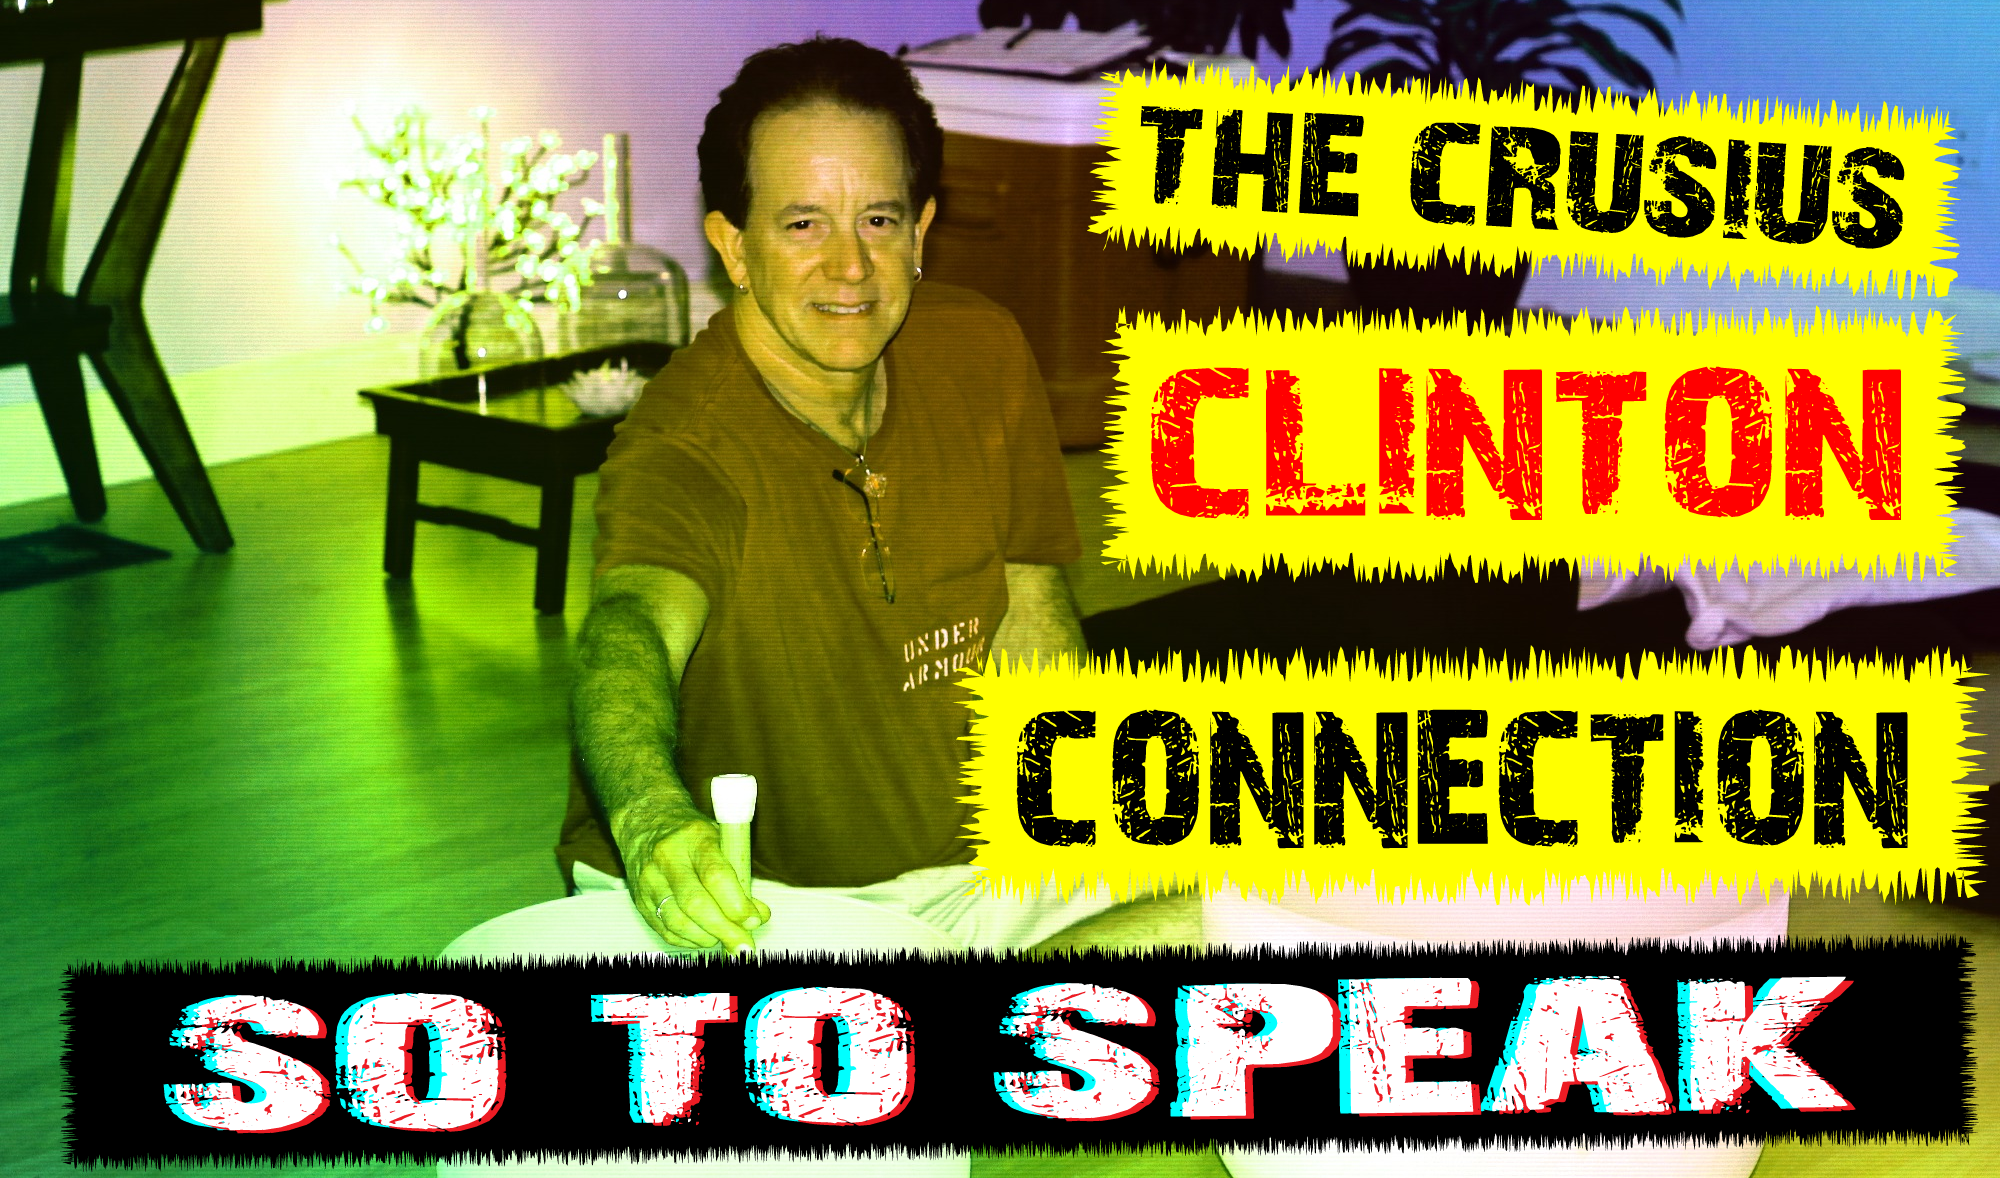 father of el paso shooter patrick crusius, bryan crusius, has ties to john of god of brazil and bill and hillary clinton